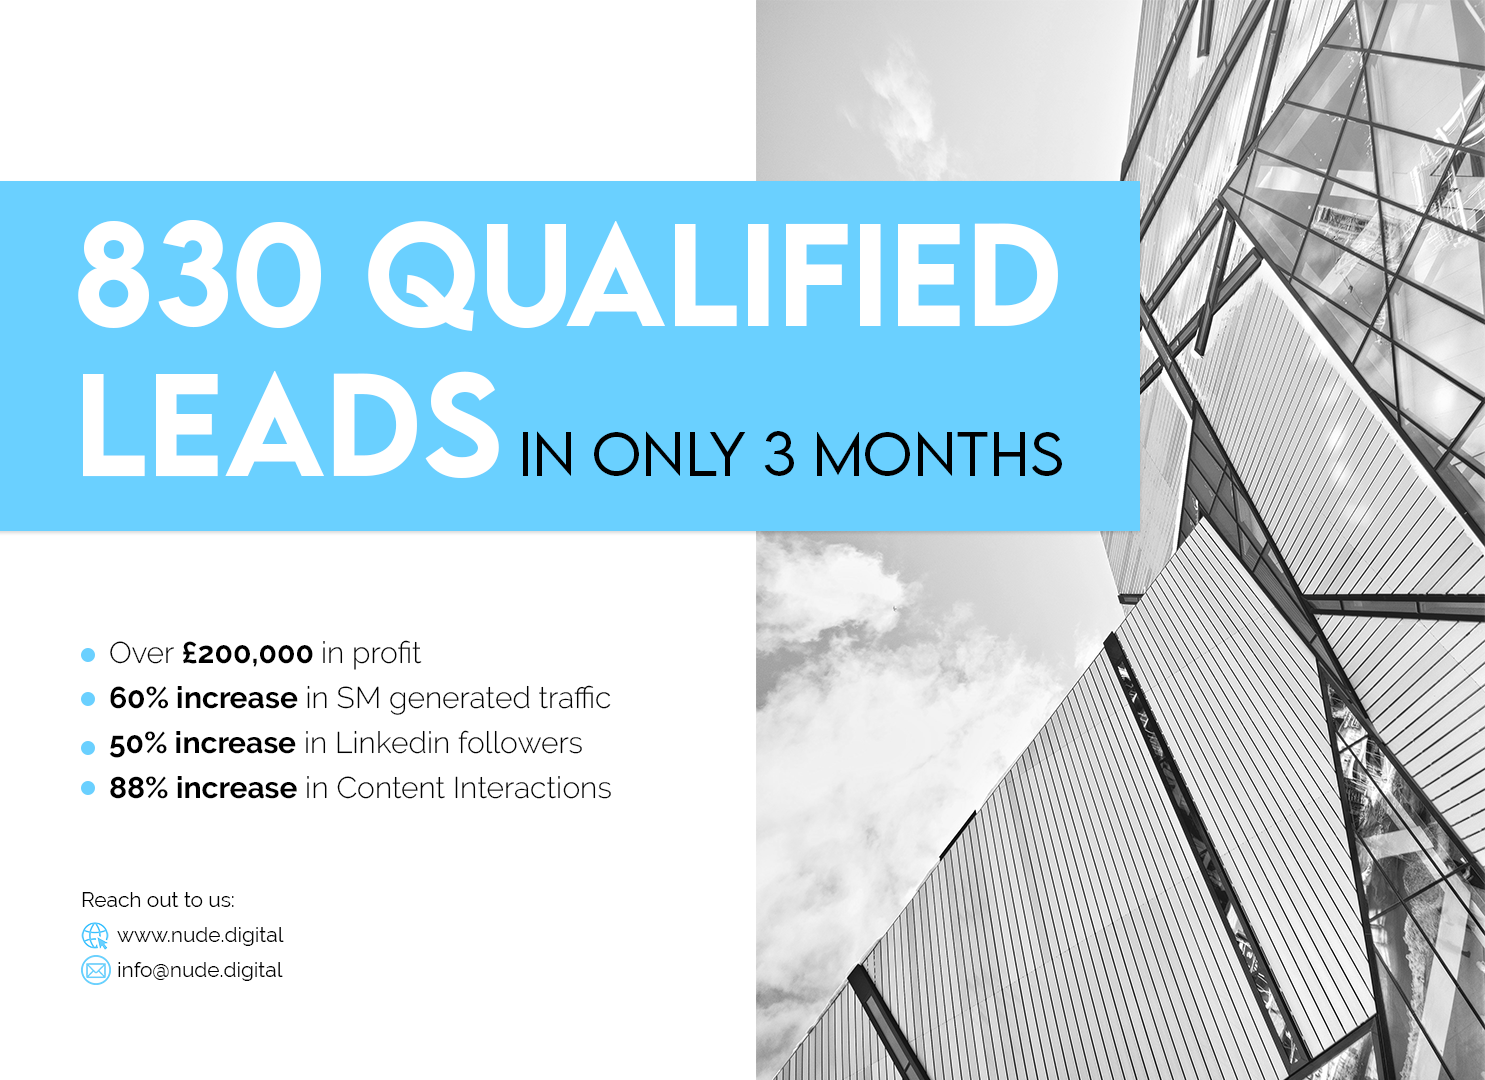 Nude Digital 830 qualified leads for Financial Service Business